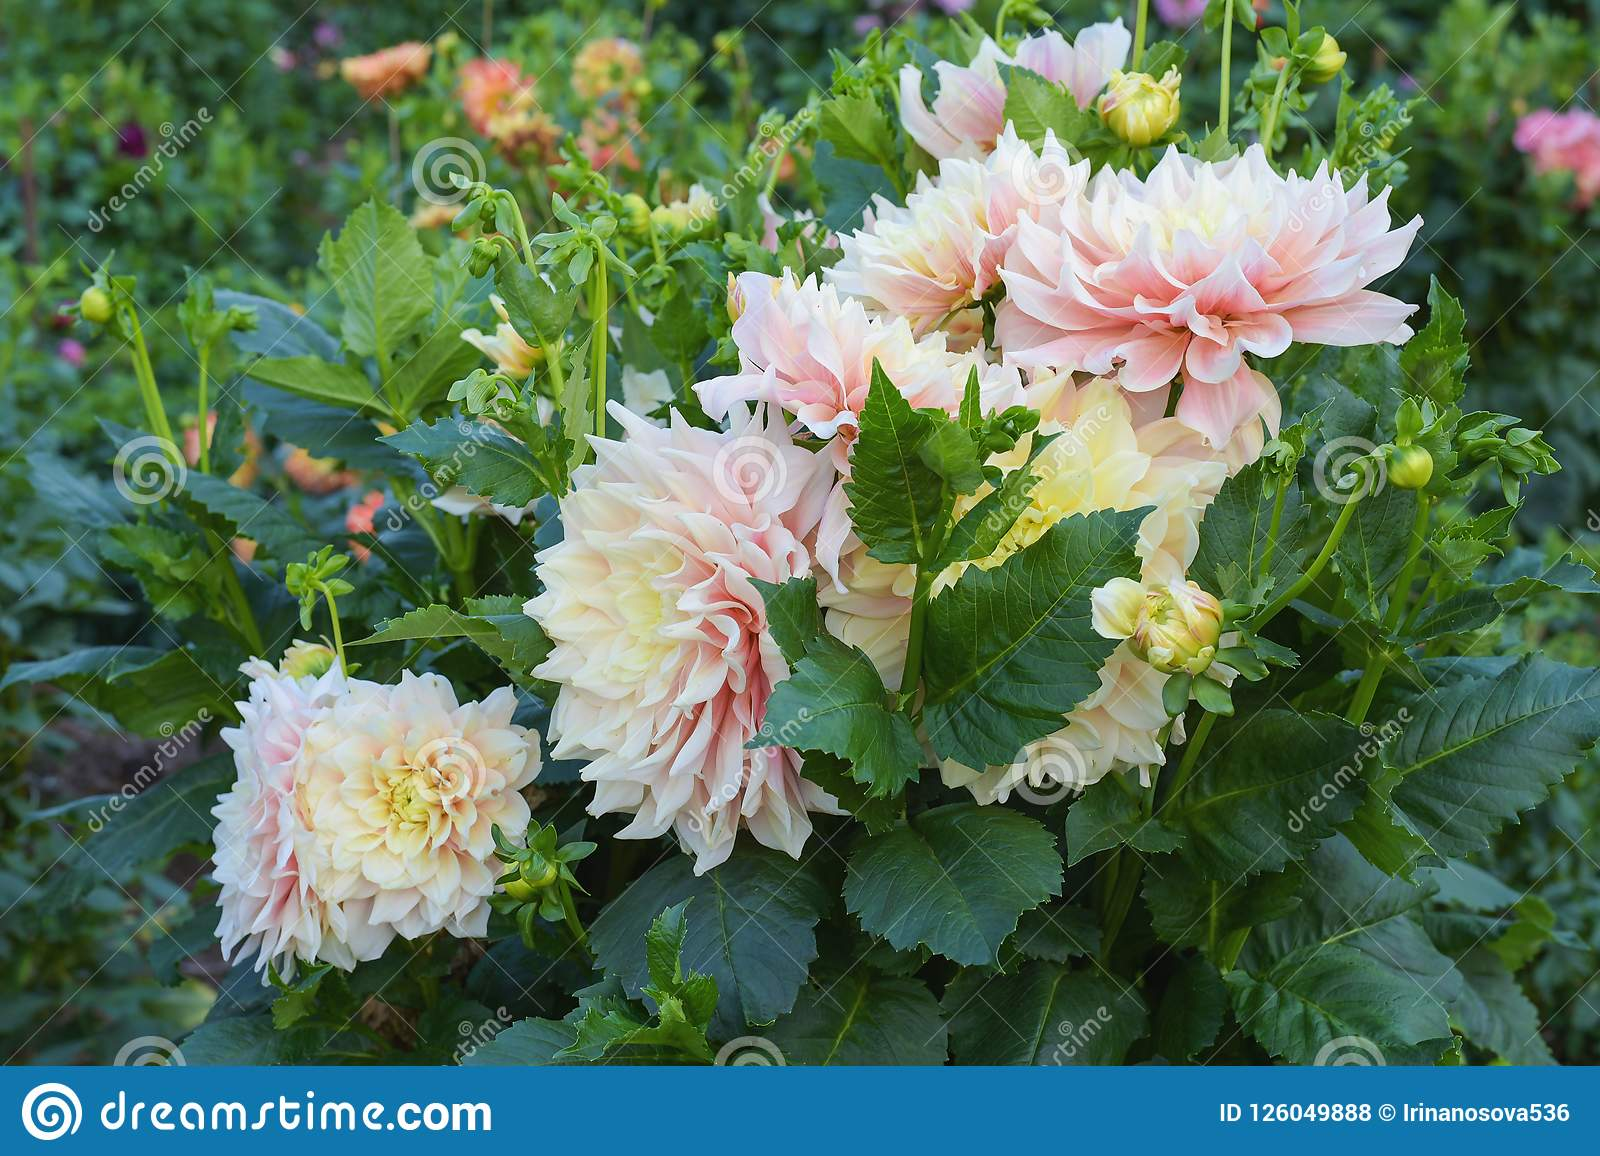 Beautiful Pink Yellow Bicolor Dahlia Flower Blossoming In The Garden